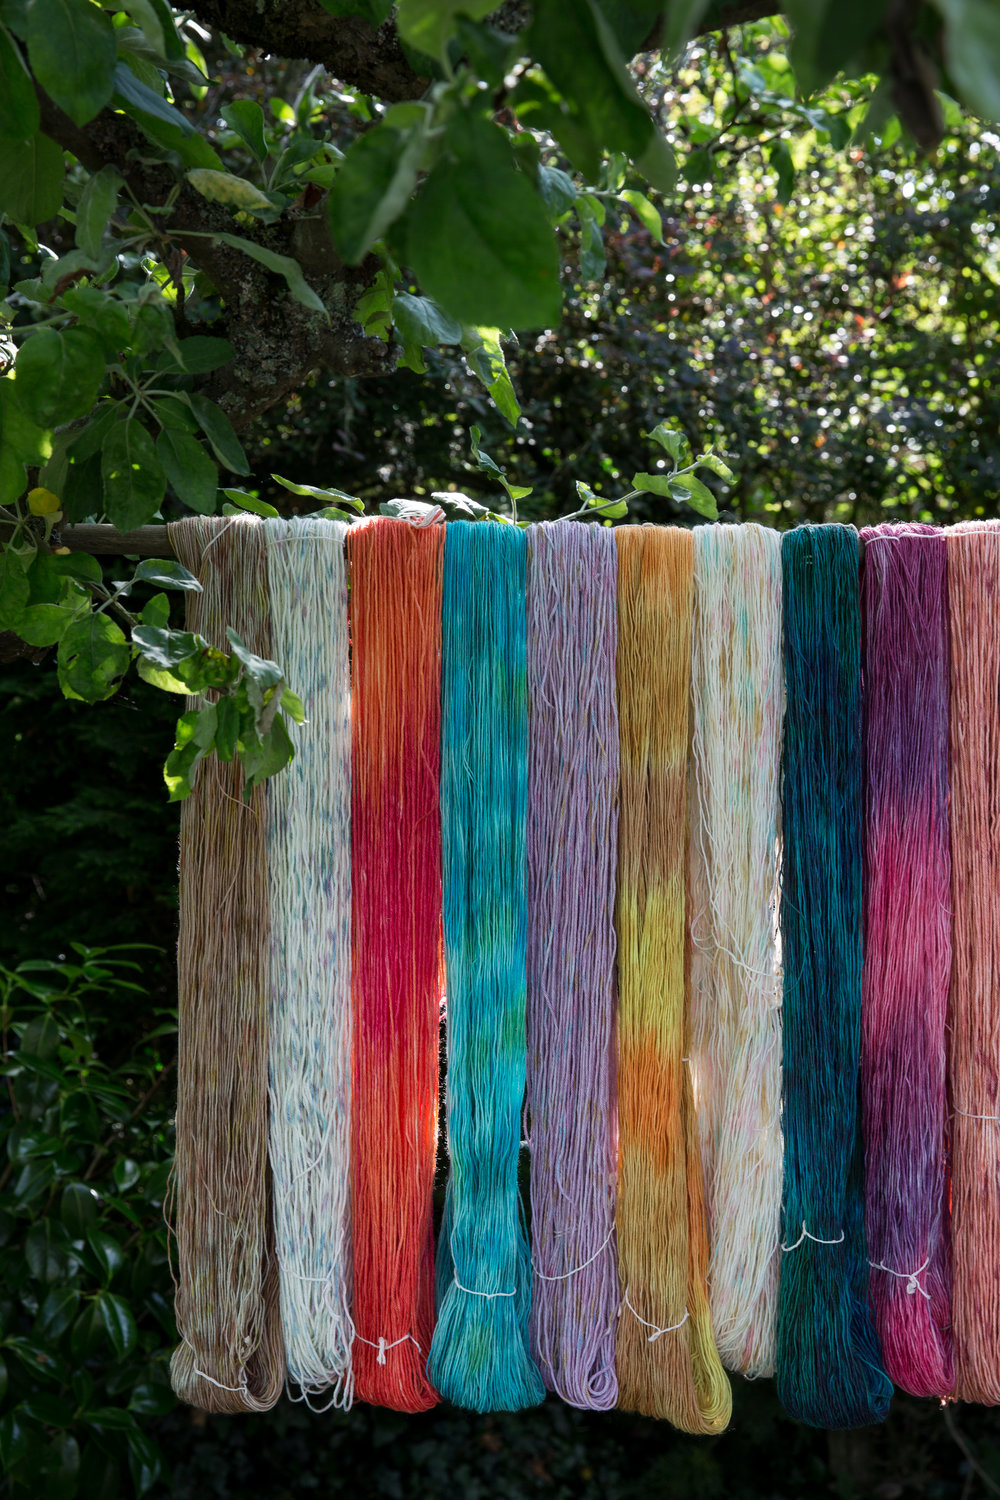 Yarn dyed at a previous retreat.